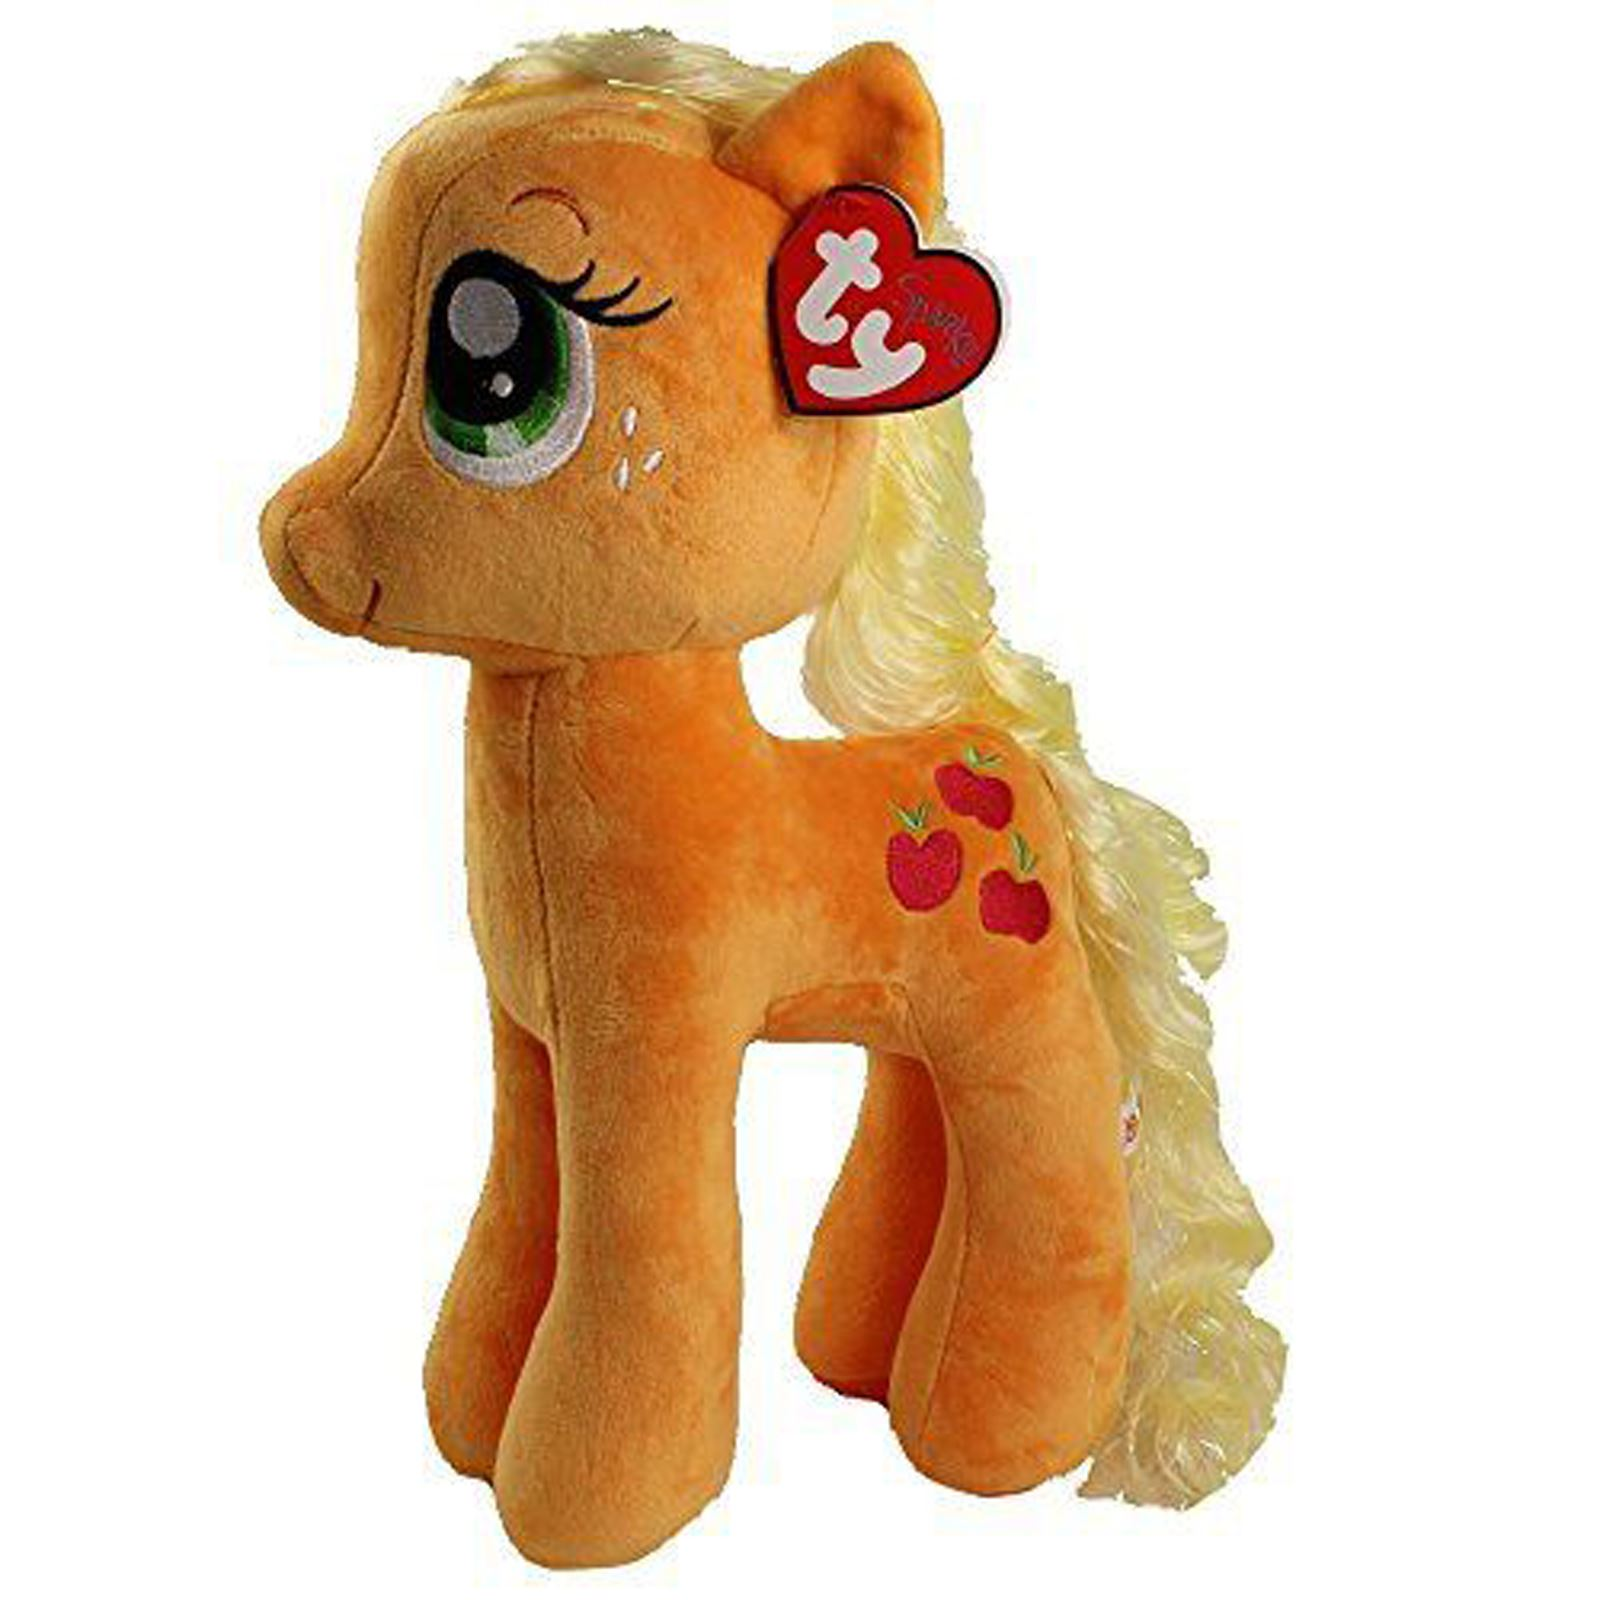 54d083223d0 My Little Pony Applejack - TY Beanie Babies - Large Soft Toy Plush 40cm 15